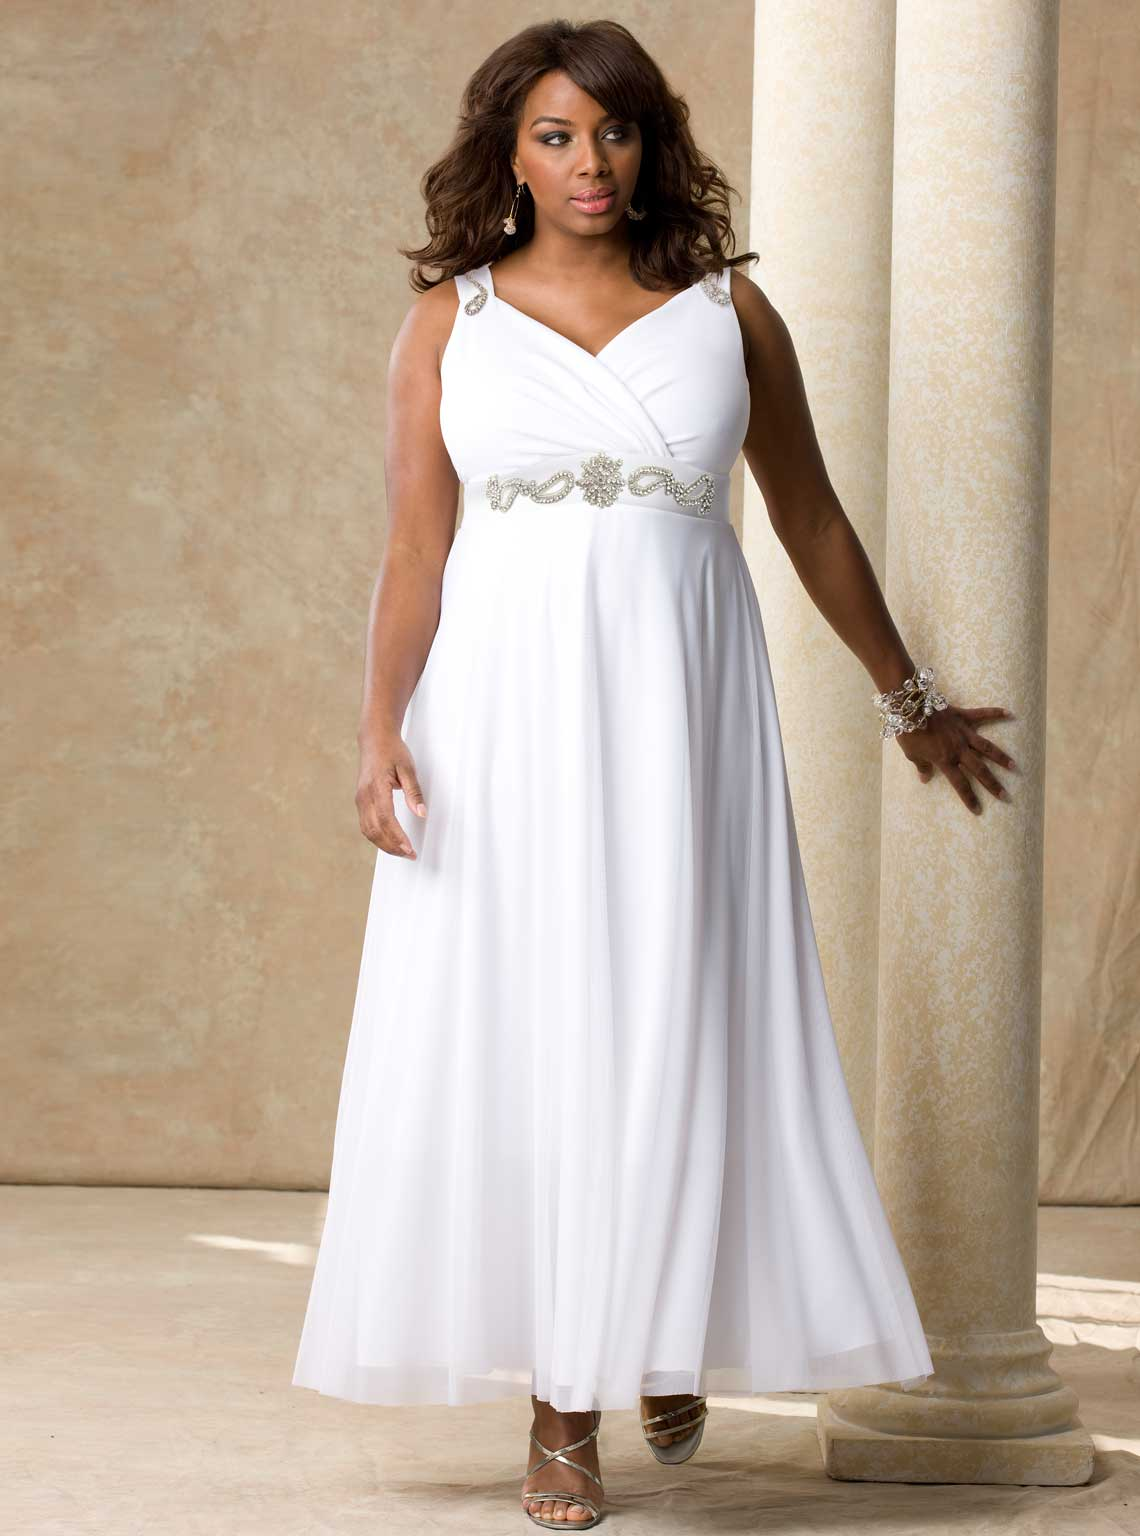 Plus size bridesmaid dresses dressed up girl bridesmaid dresses for plus size ombrellifo Image collections